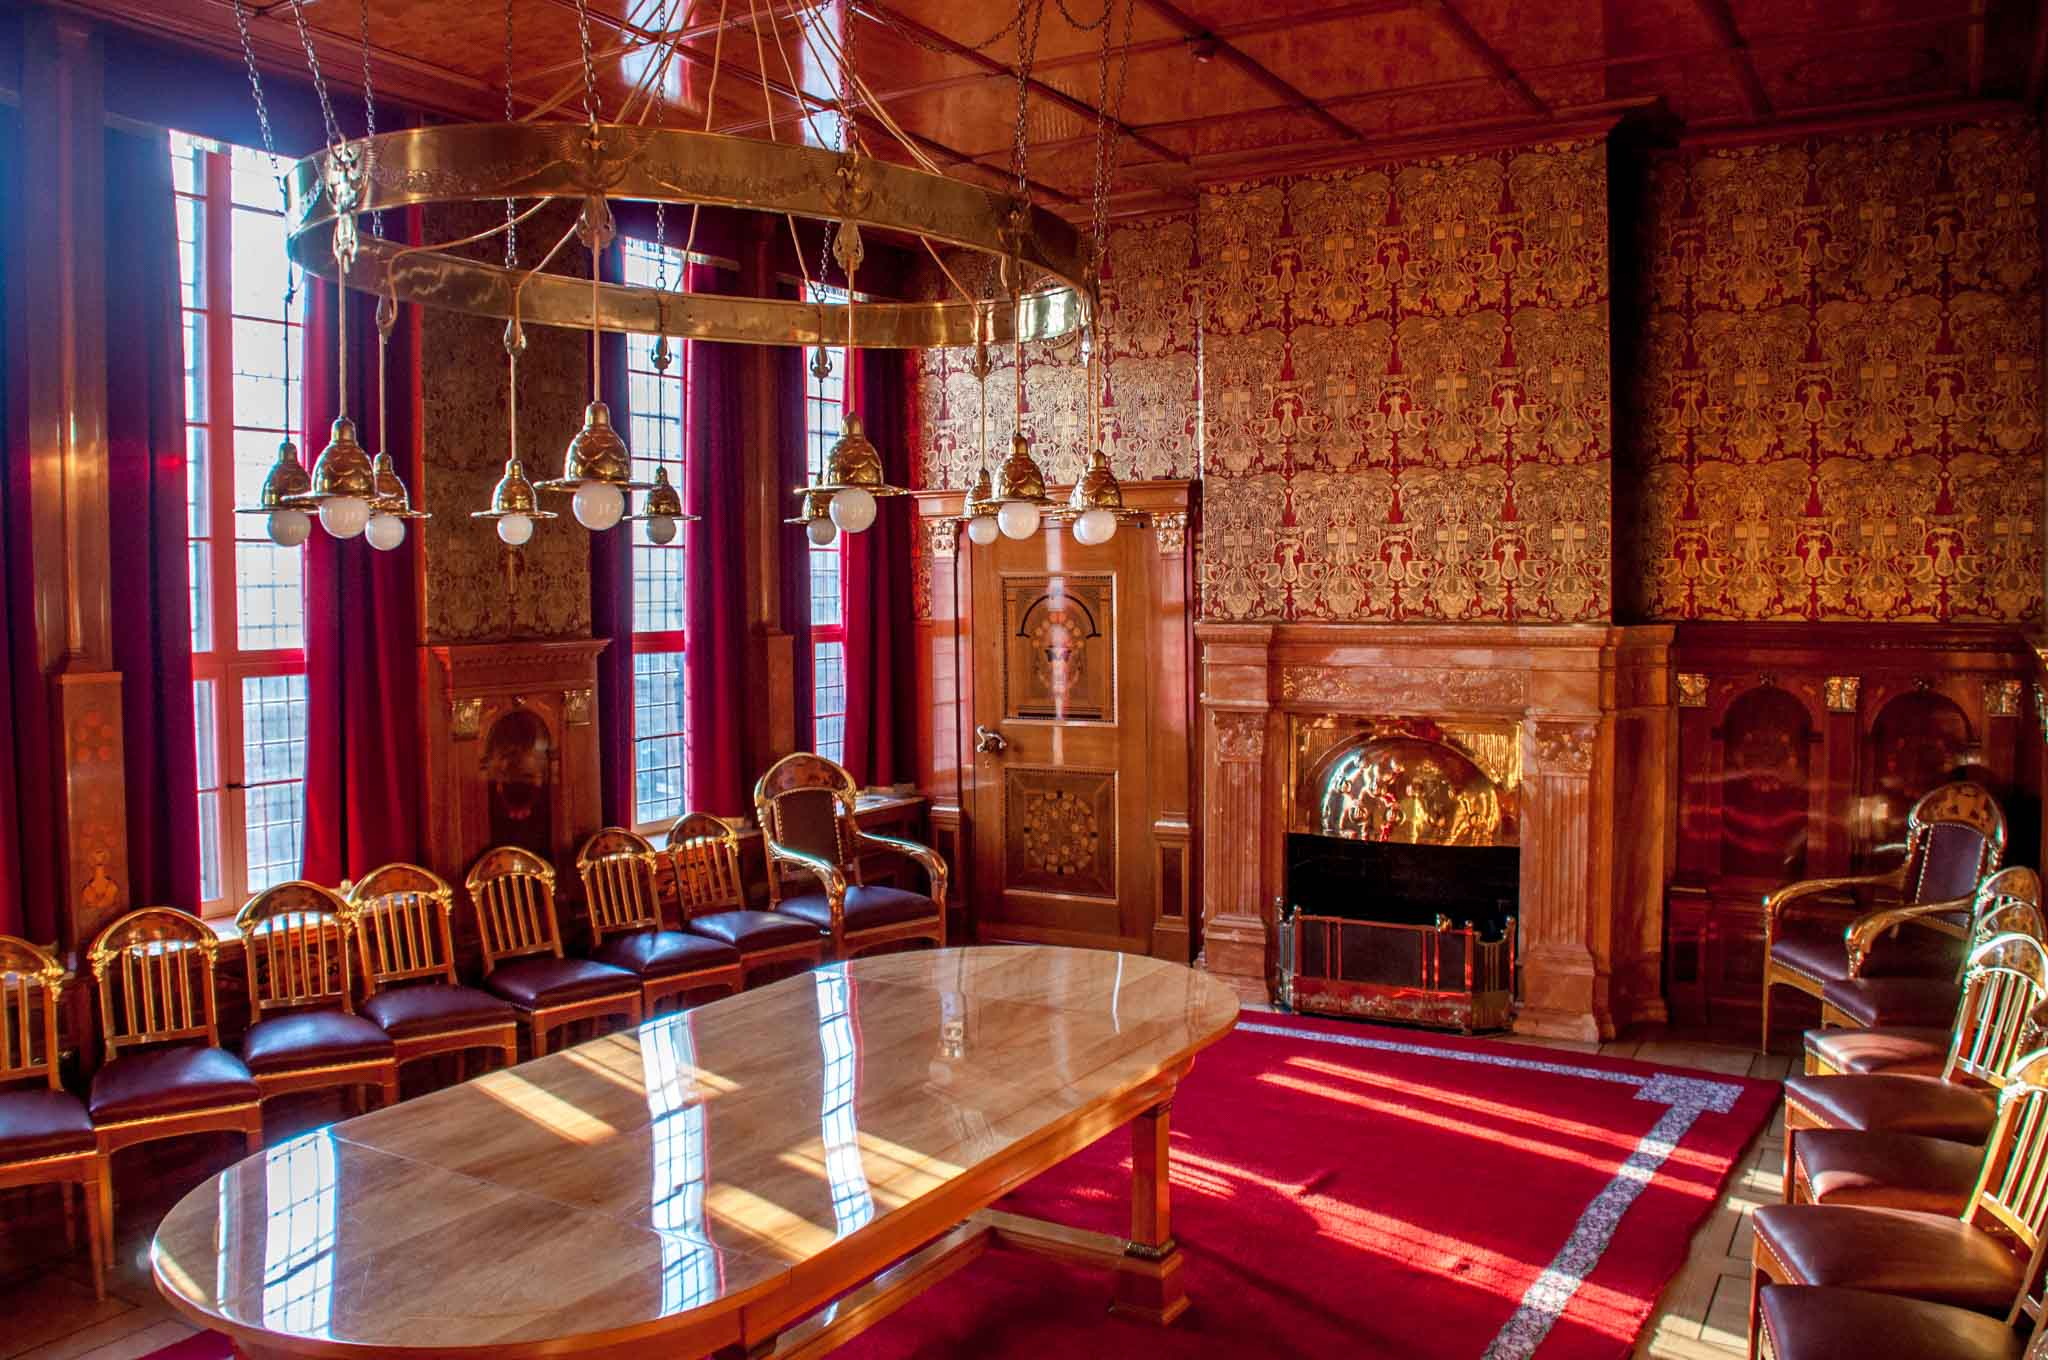 Golden Chamber meeting room decorated in red and gold